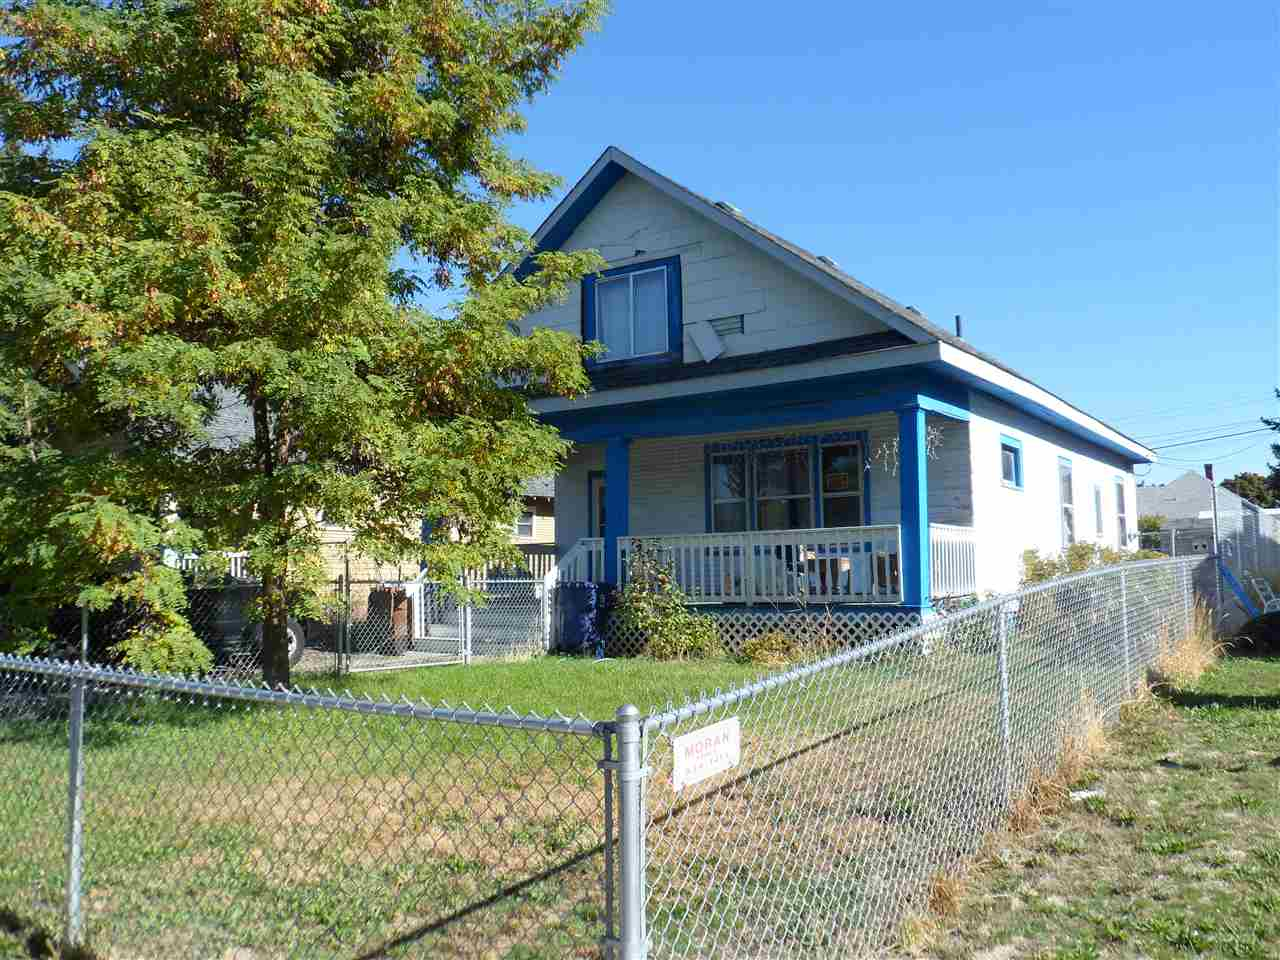 Spacious 1908 Bungalow fixer in nice NE pocket. Big front porch, large entryway with built ins, high ceilings, large living & formal dining rooms. Main floor laundry room, stairs to attic that could be finished. New gas furnace & hot water tank. Roof looks good, completely fenced front & back.